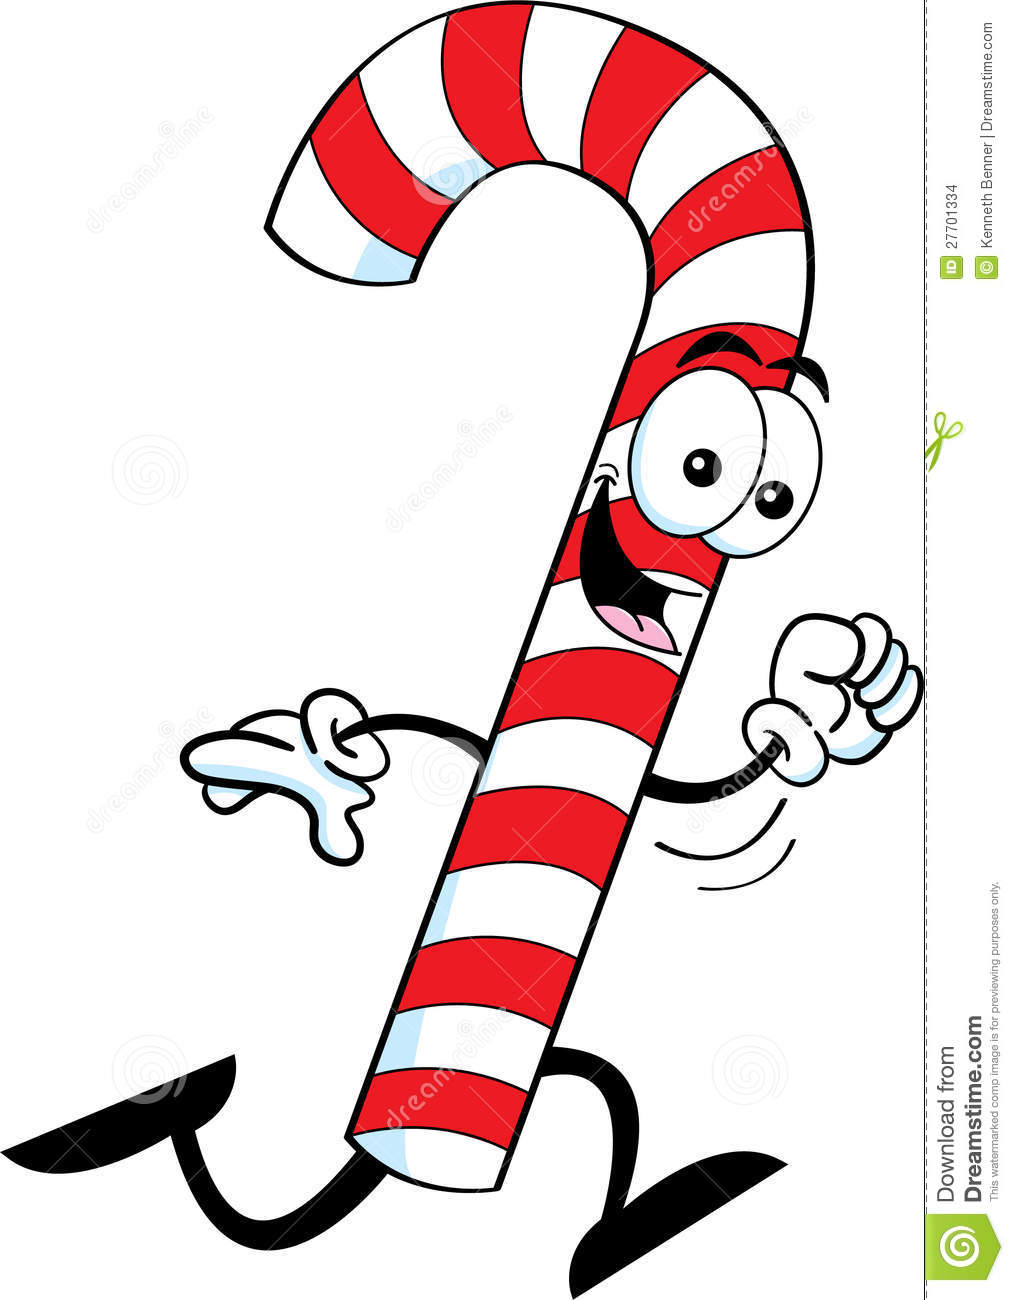 1014x1300 Easy Cartoon Candy Canes Colossal Cane Clip Art Stock Vector